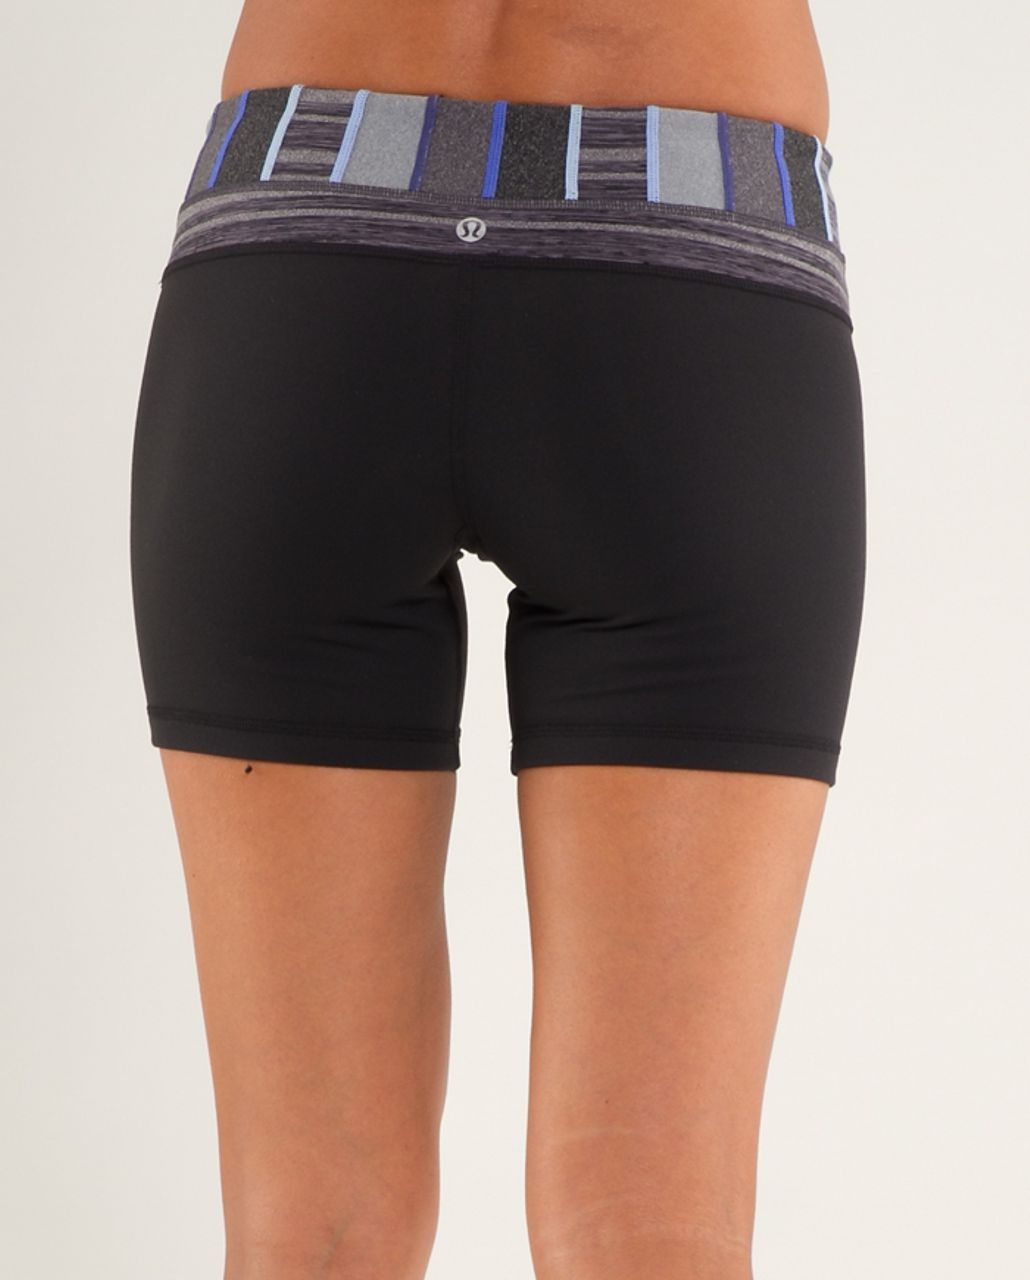 Lululemon Groove Short - Black /  Quilt 18